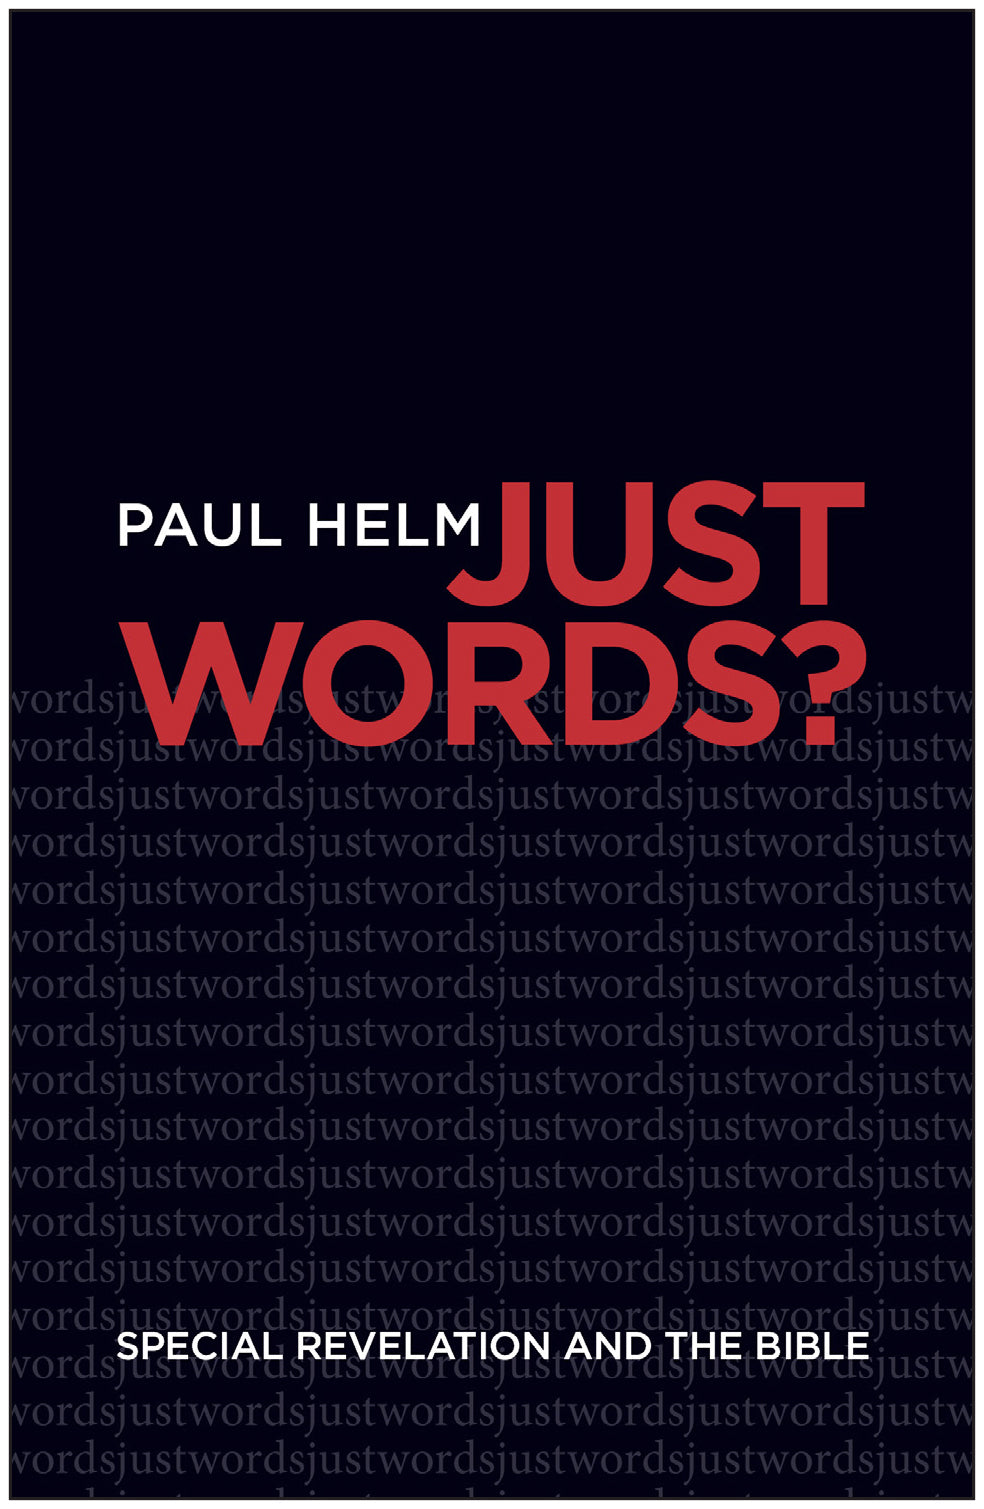 Just Words?